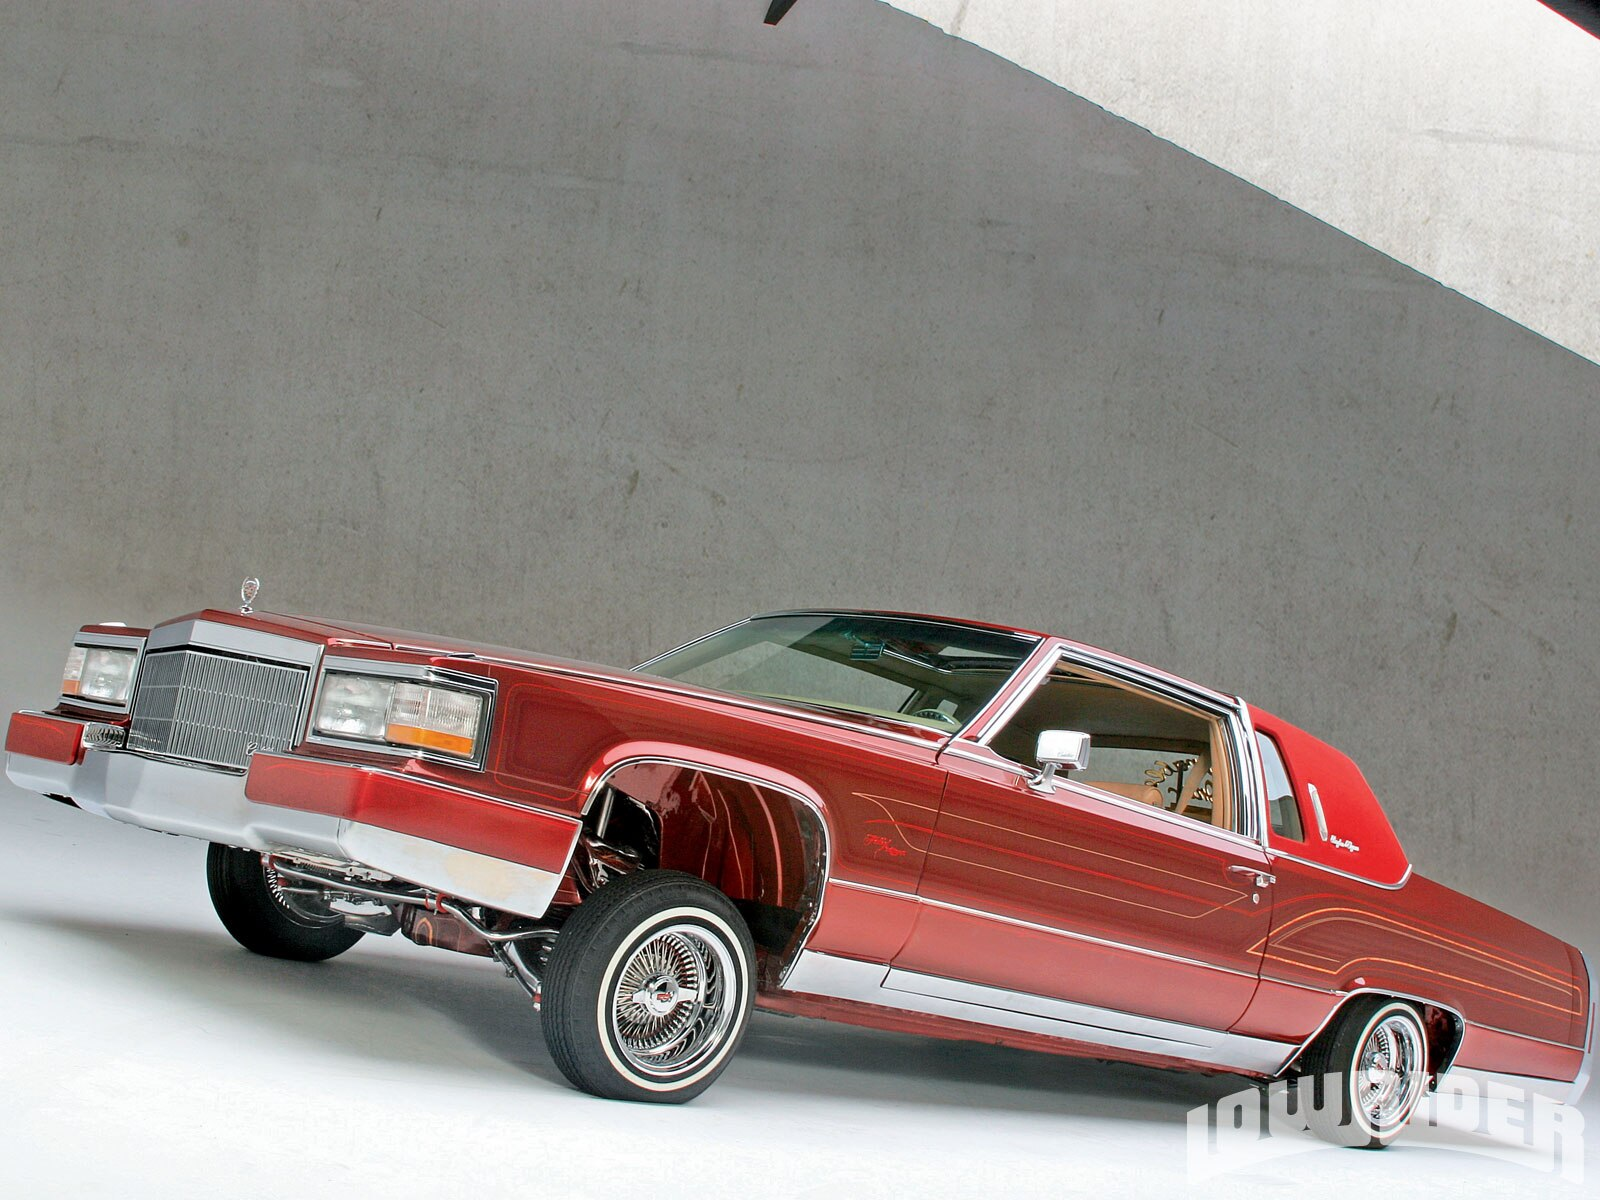 1101-lrmp-04-o-1981-cadillac-coupe-deville-driver-side-front1